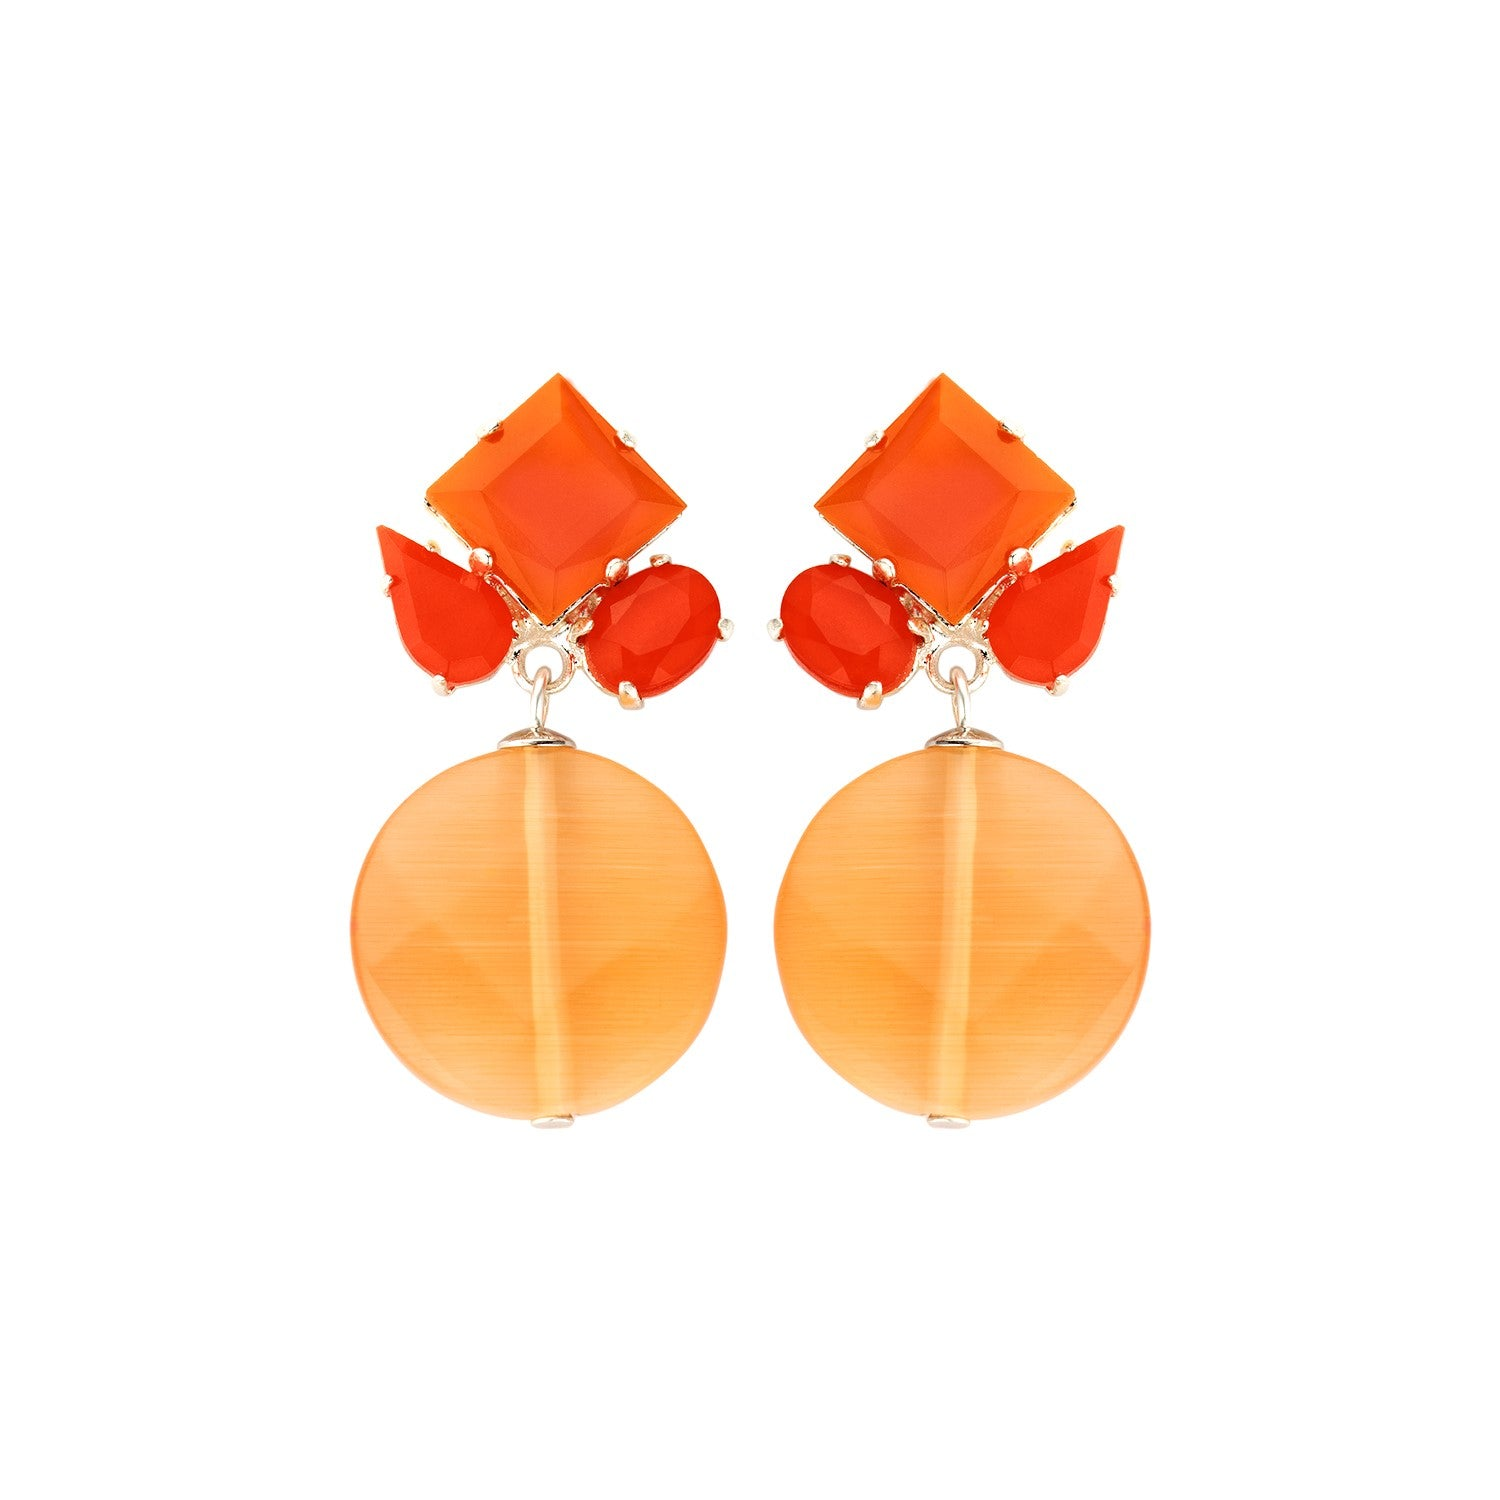 Square mix orange earrings - Souvenirs de Pomme